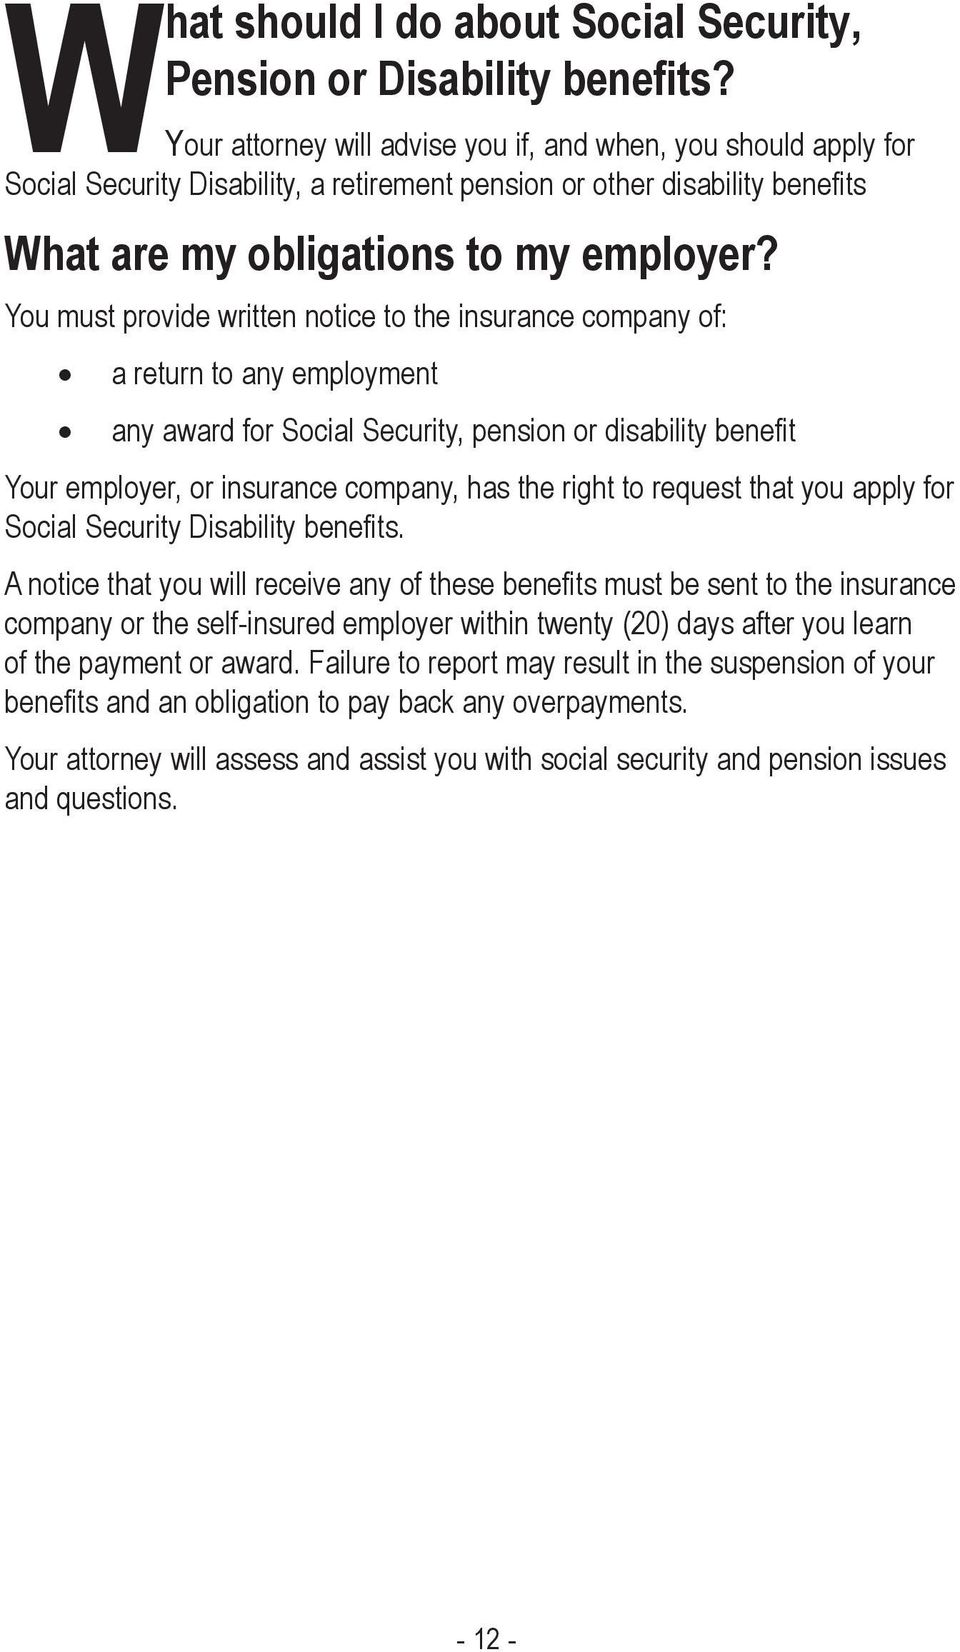 You must provide written notice to the insurance company of: a return to any employment any award for Social Security, pension or disability bene t Your employer, or insurance company, has the right